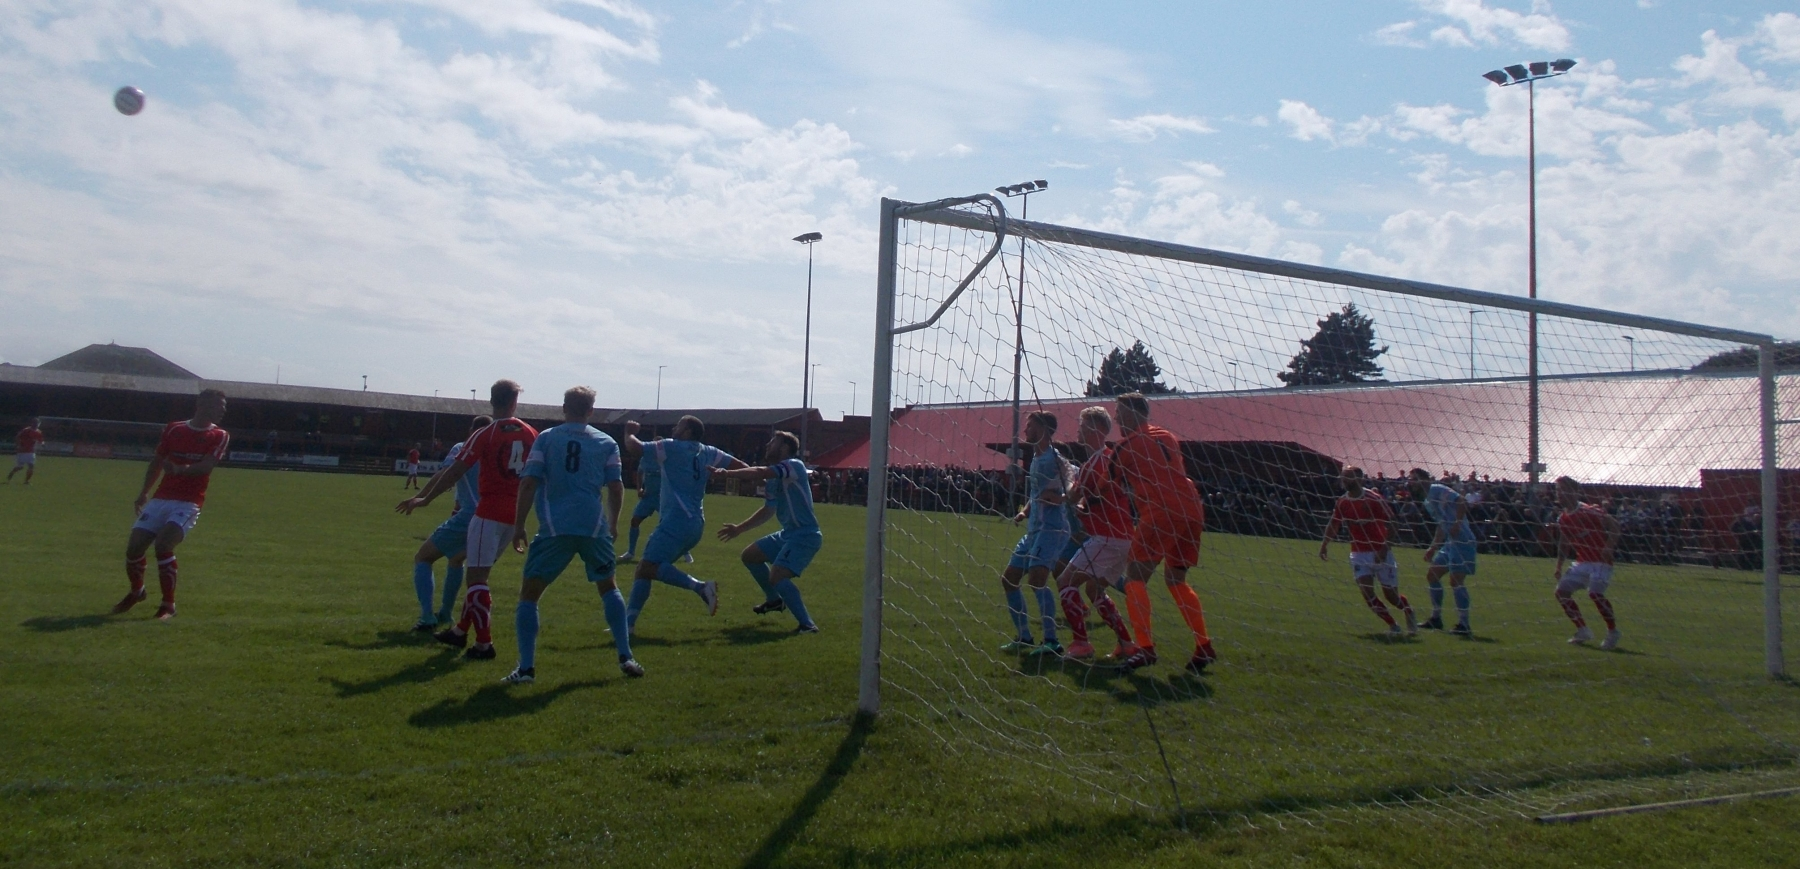 Workington AFC v. Stafford Rangers - Sat 18 Aug18 (Ben Challis & Kevin Haney)